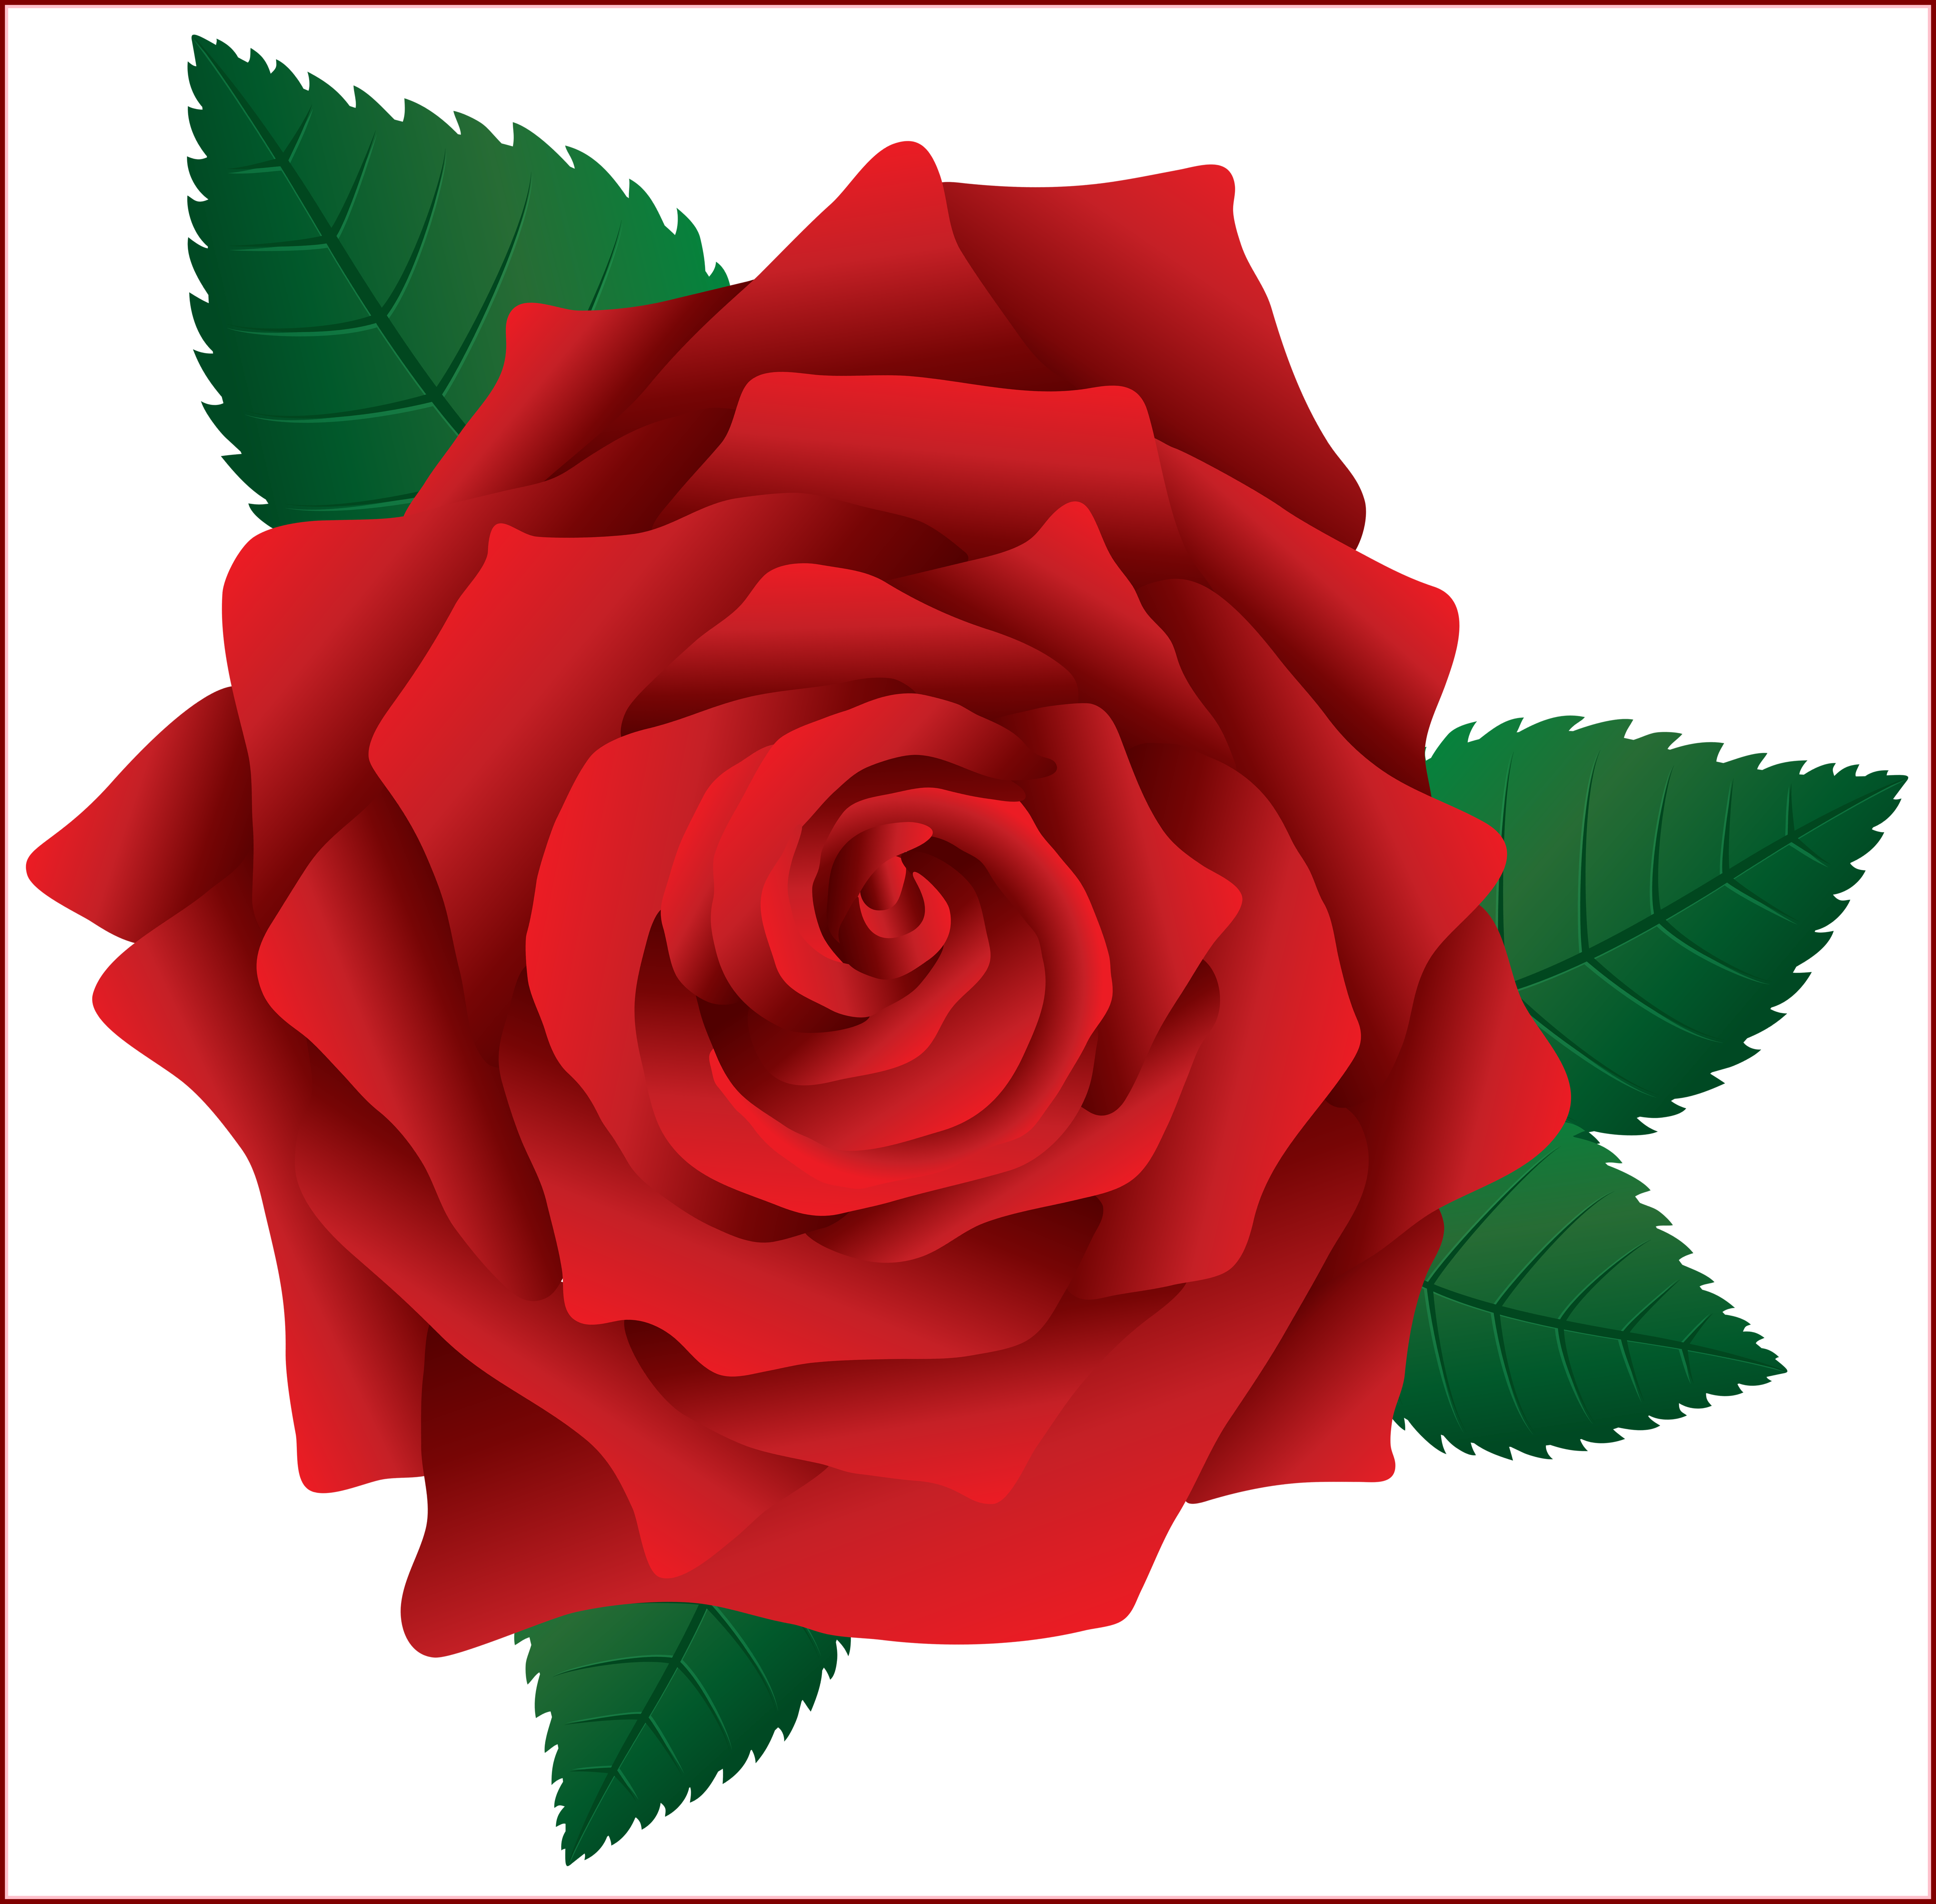 Flower clipart elegant vector transparent download Incredible Clipart And Rose Pict For Red Flower Ideas In Clarkston ... vector transparent download